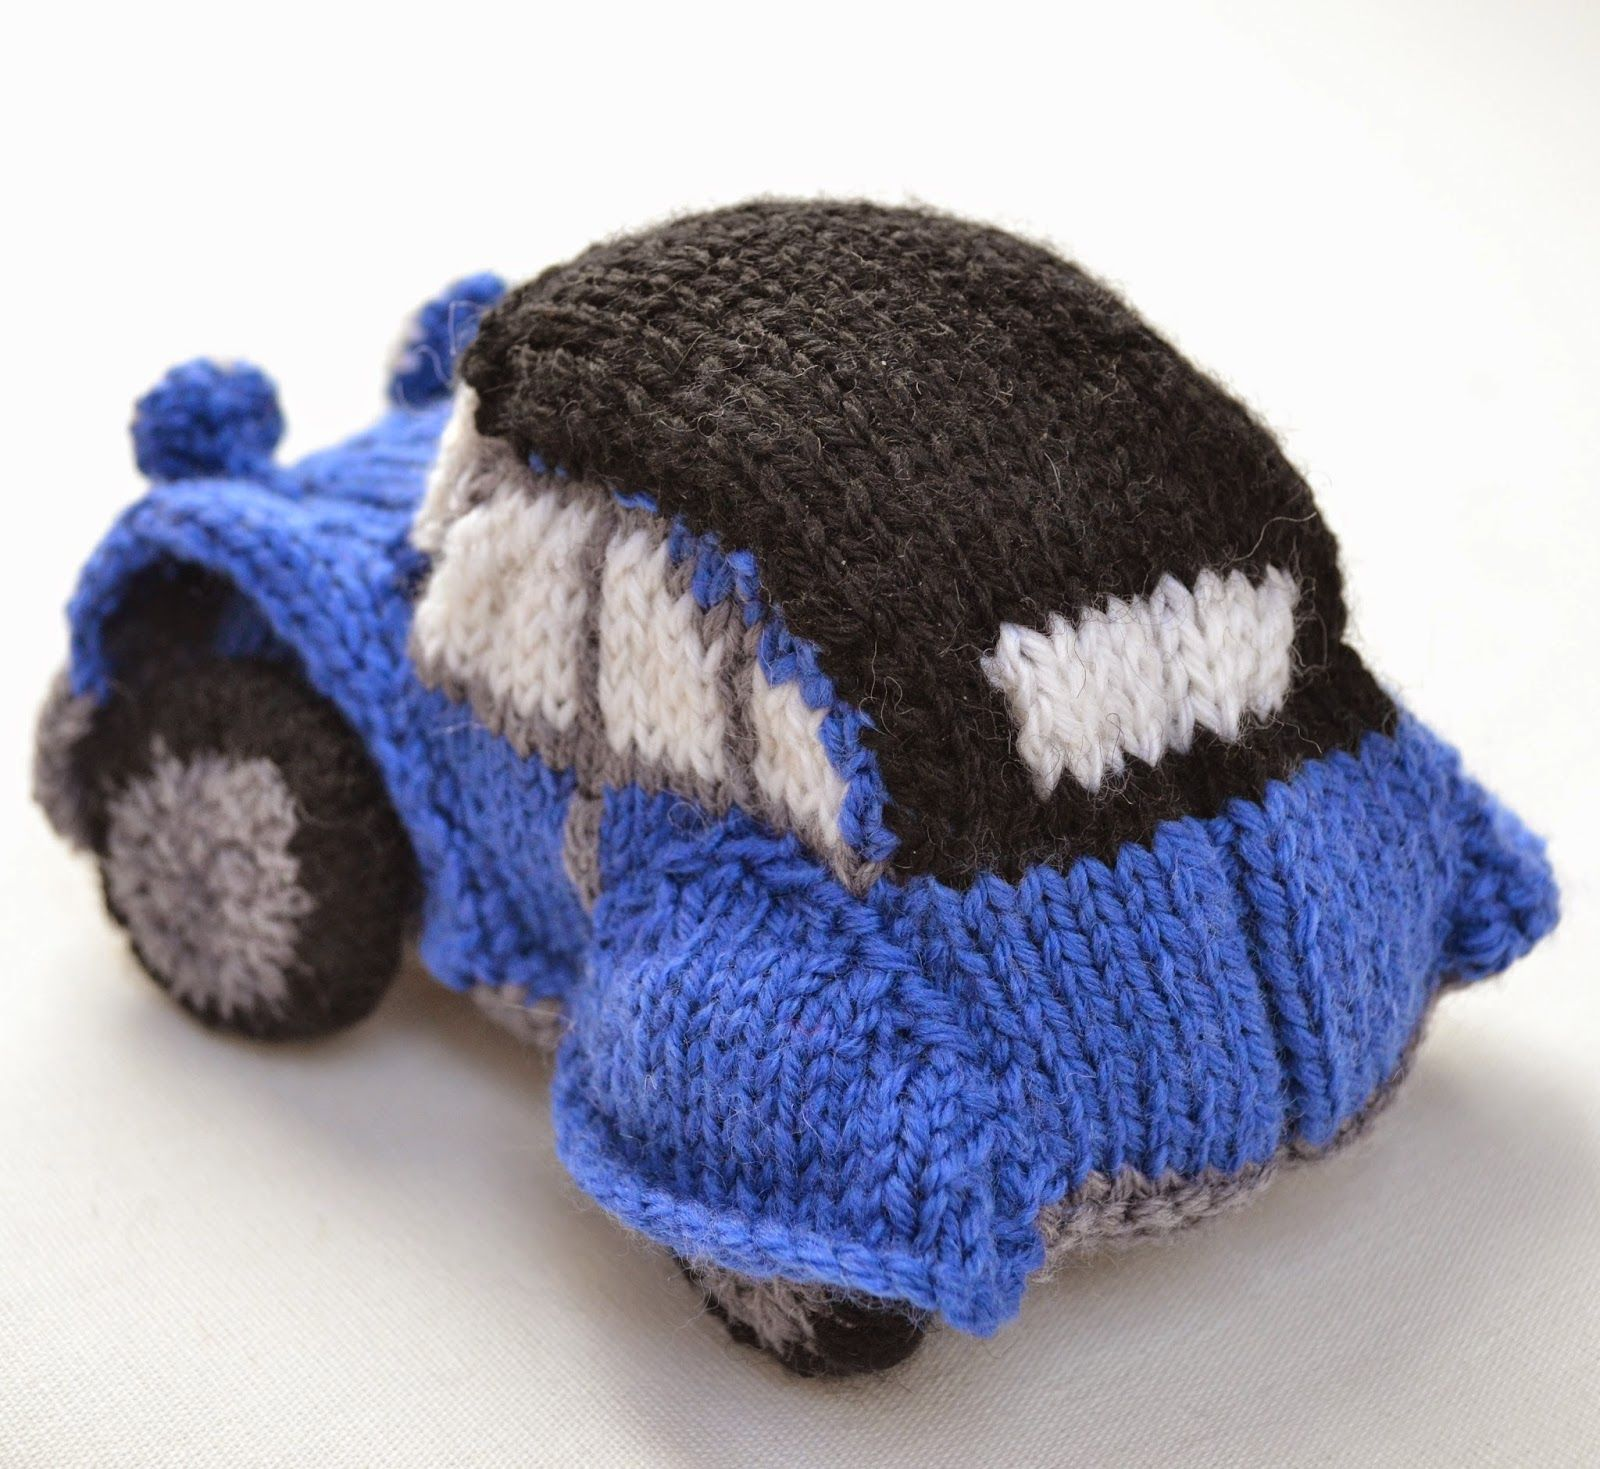 Blue 2CV Car Knitted | Toys | Pinterest | Cars and Dolls